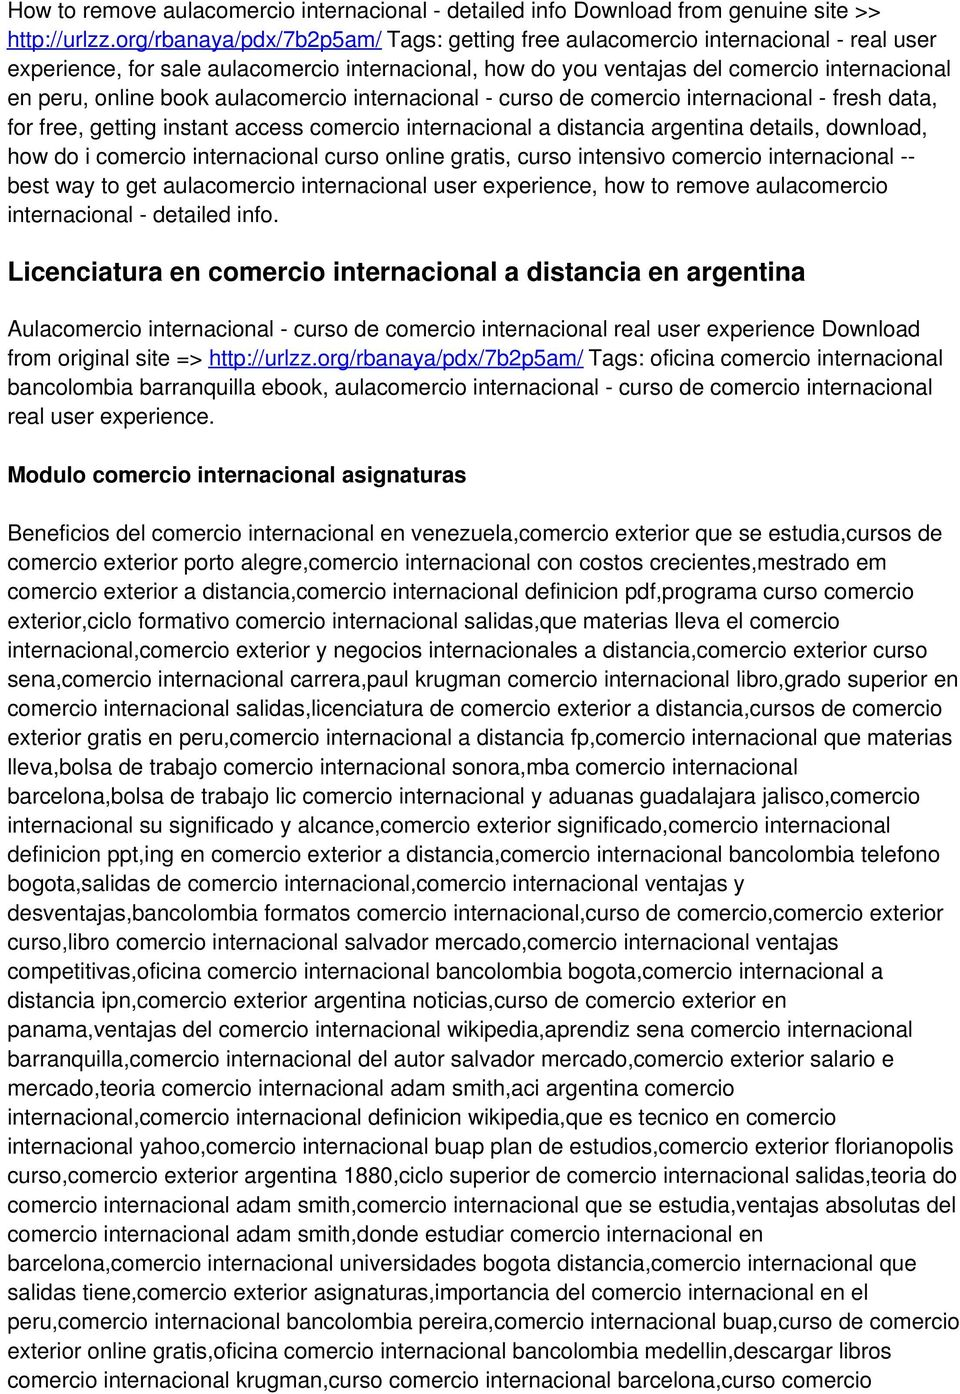 aulacomercio internacional - curso de comercio internacional - fresh data, for free, getting instant access comercio internacional a distancia argentina details, download, how do i comercio